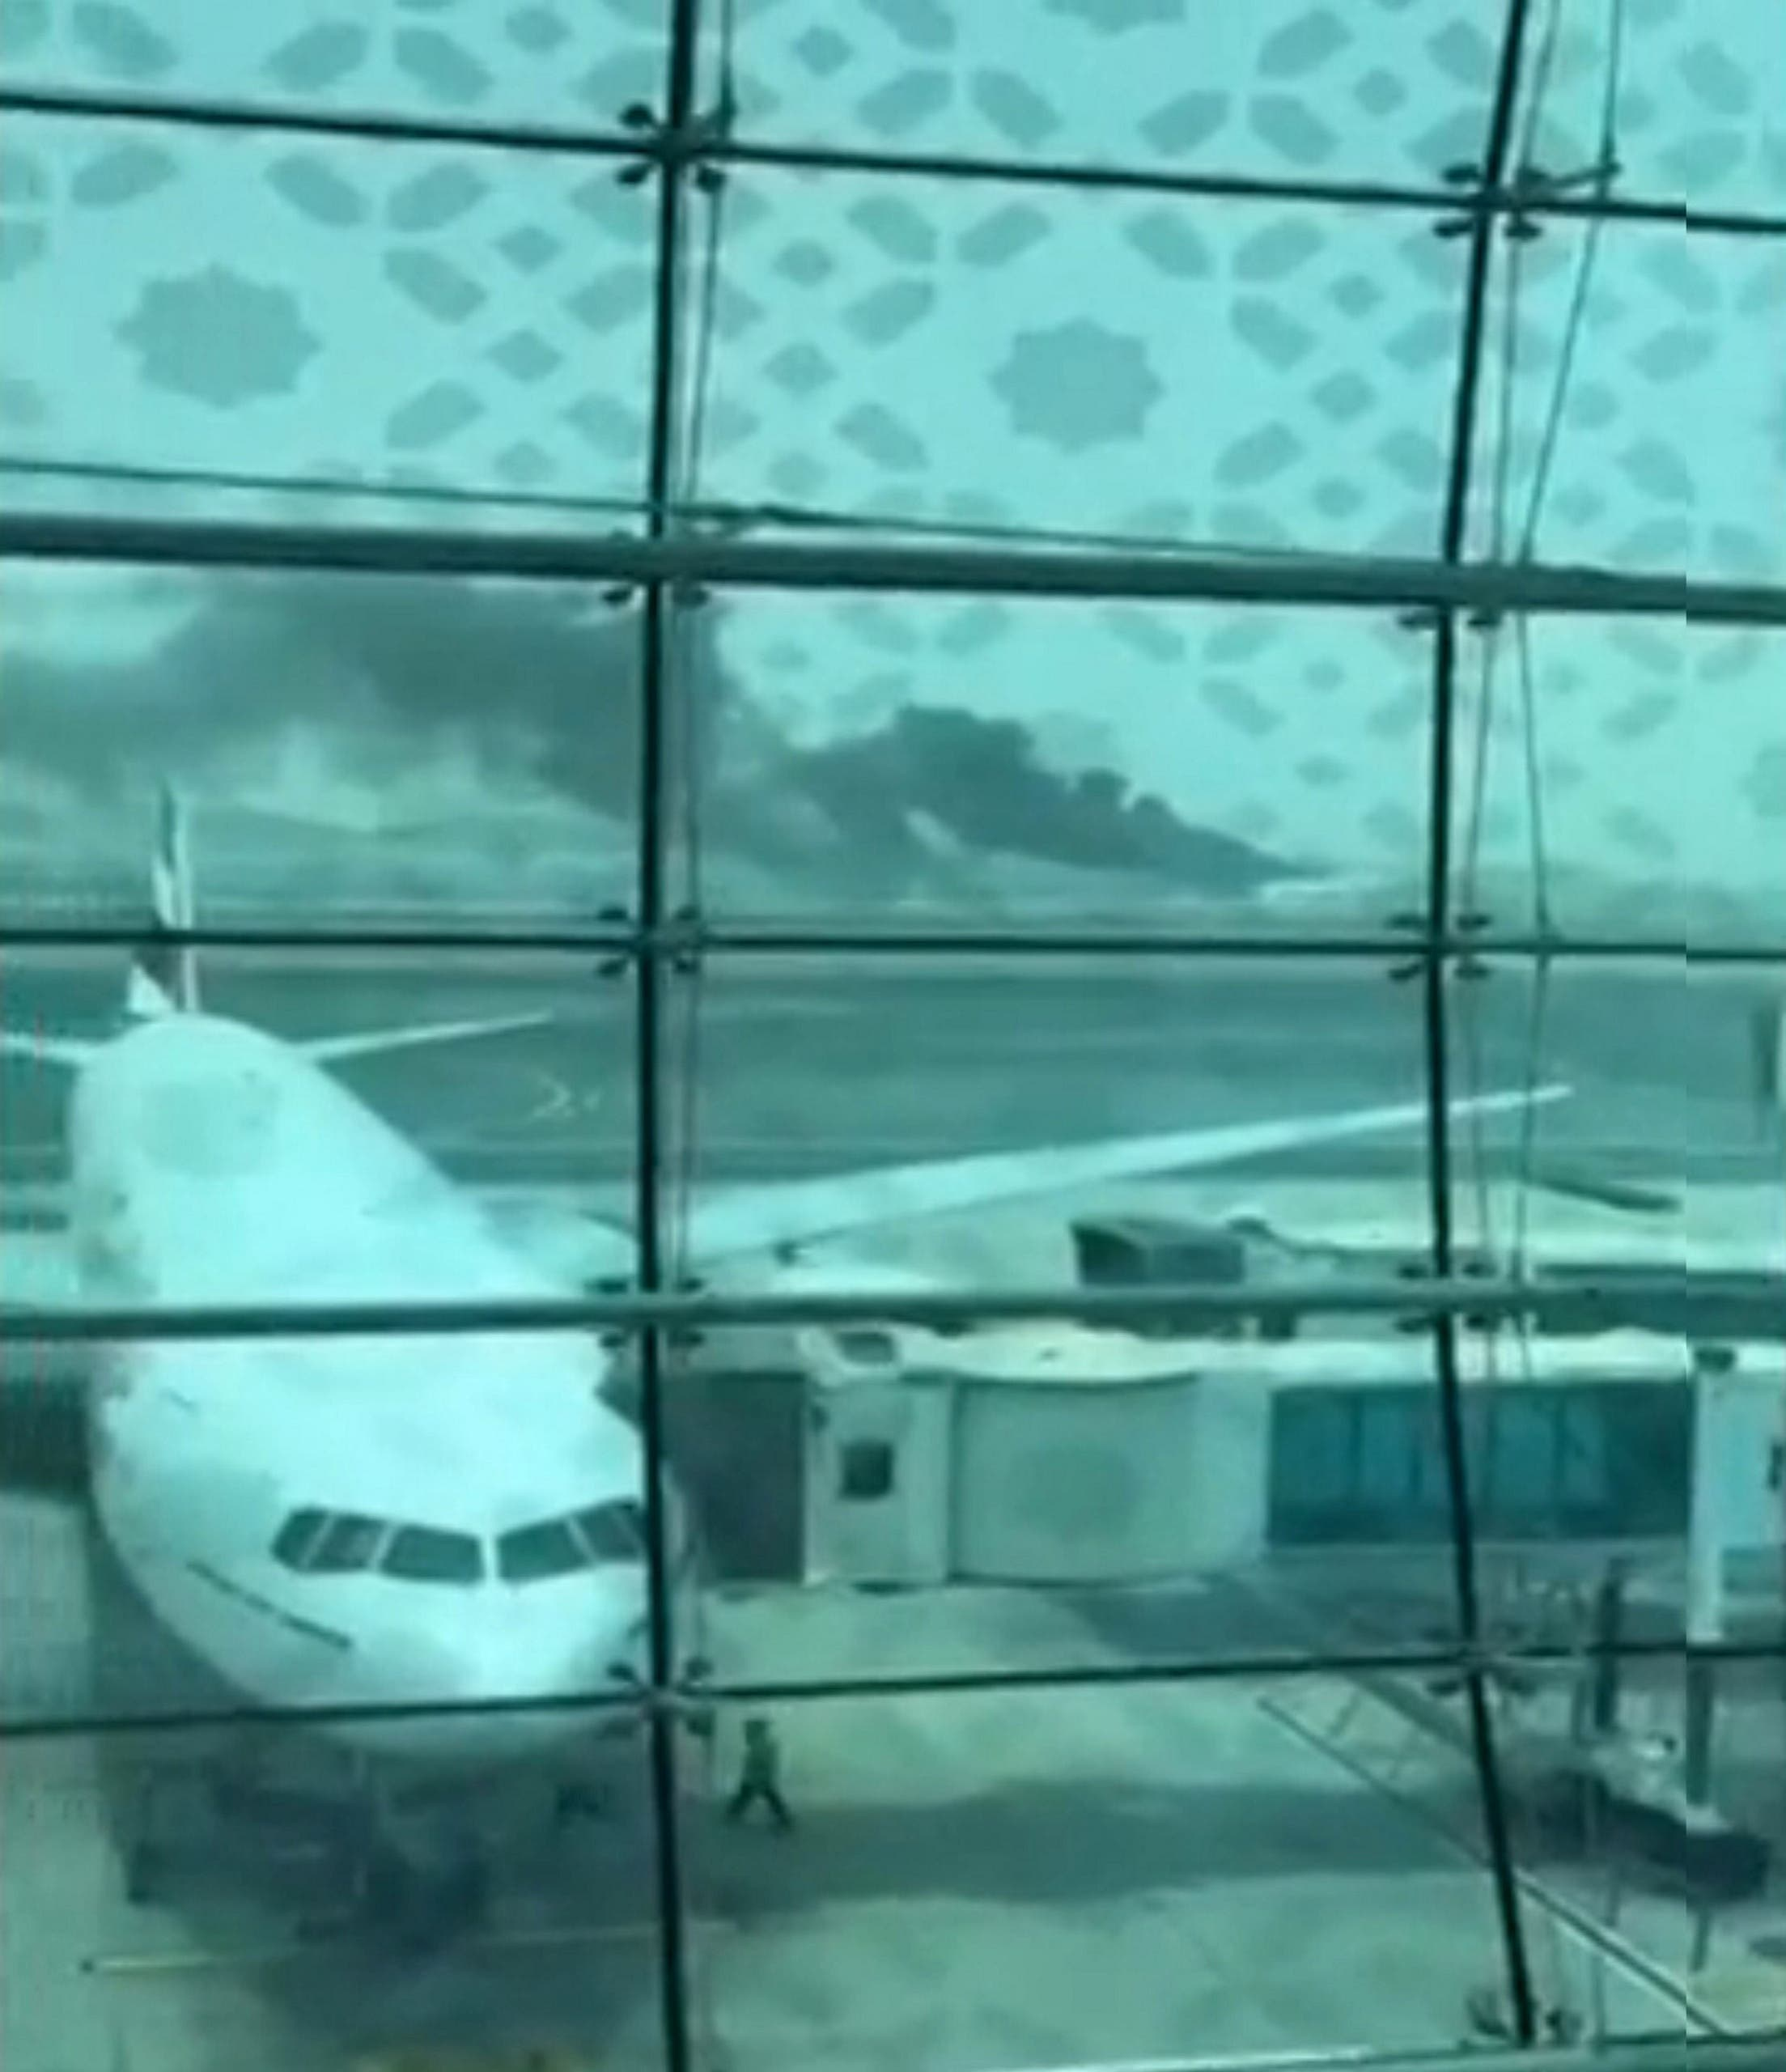 Still picture taken from an amateur video shows smoke after an Emirates Airline flight crash-landed at Dubai International Airport. (Reuters)